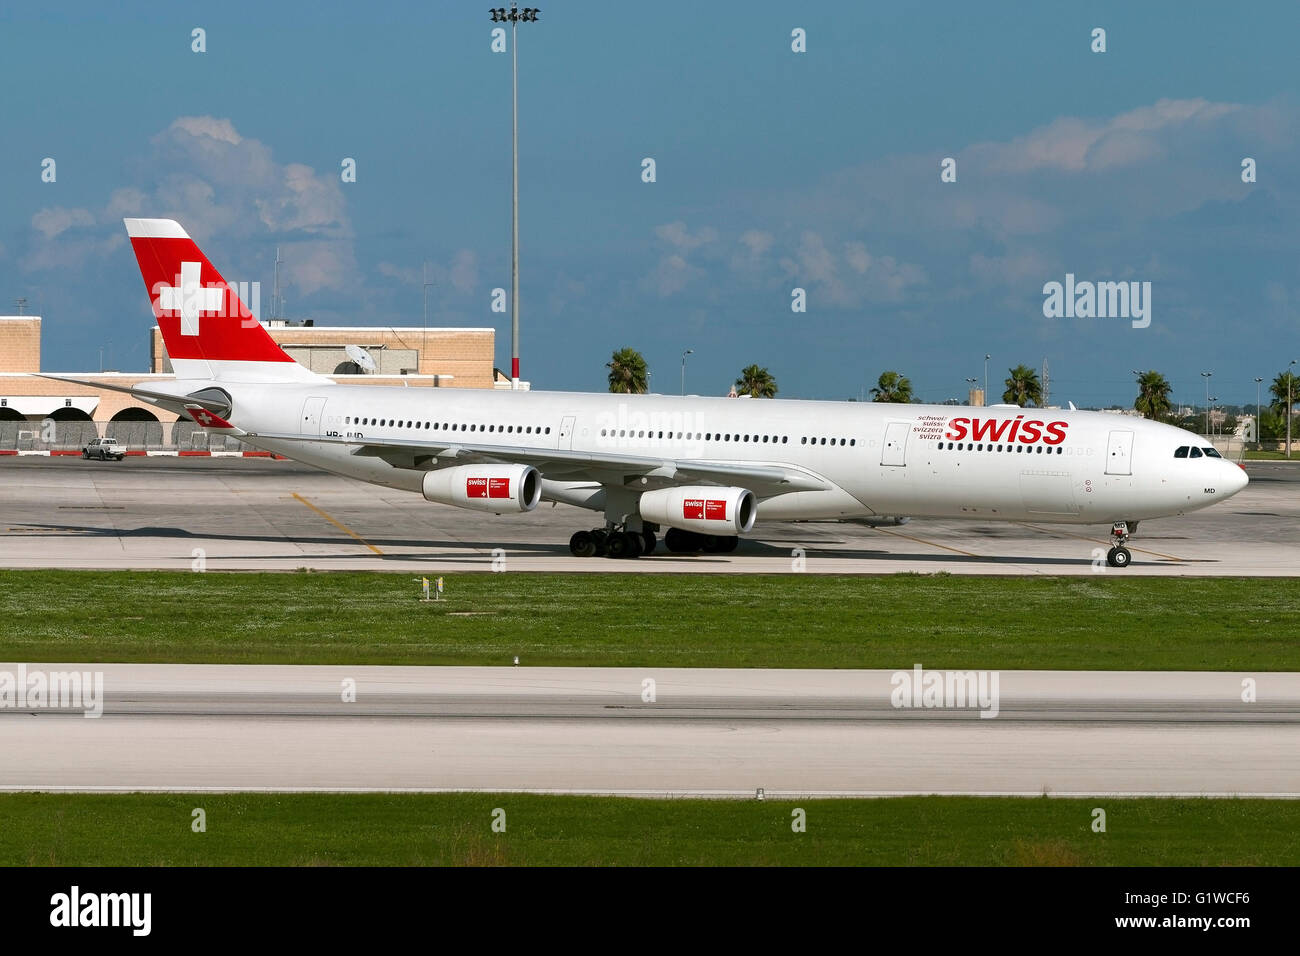 Airbus a340 313 swiss international air lines aviation photo - Stock Photo Swiss International Air Lines Airbus A340 313 On Pilot Training Flights In Malta